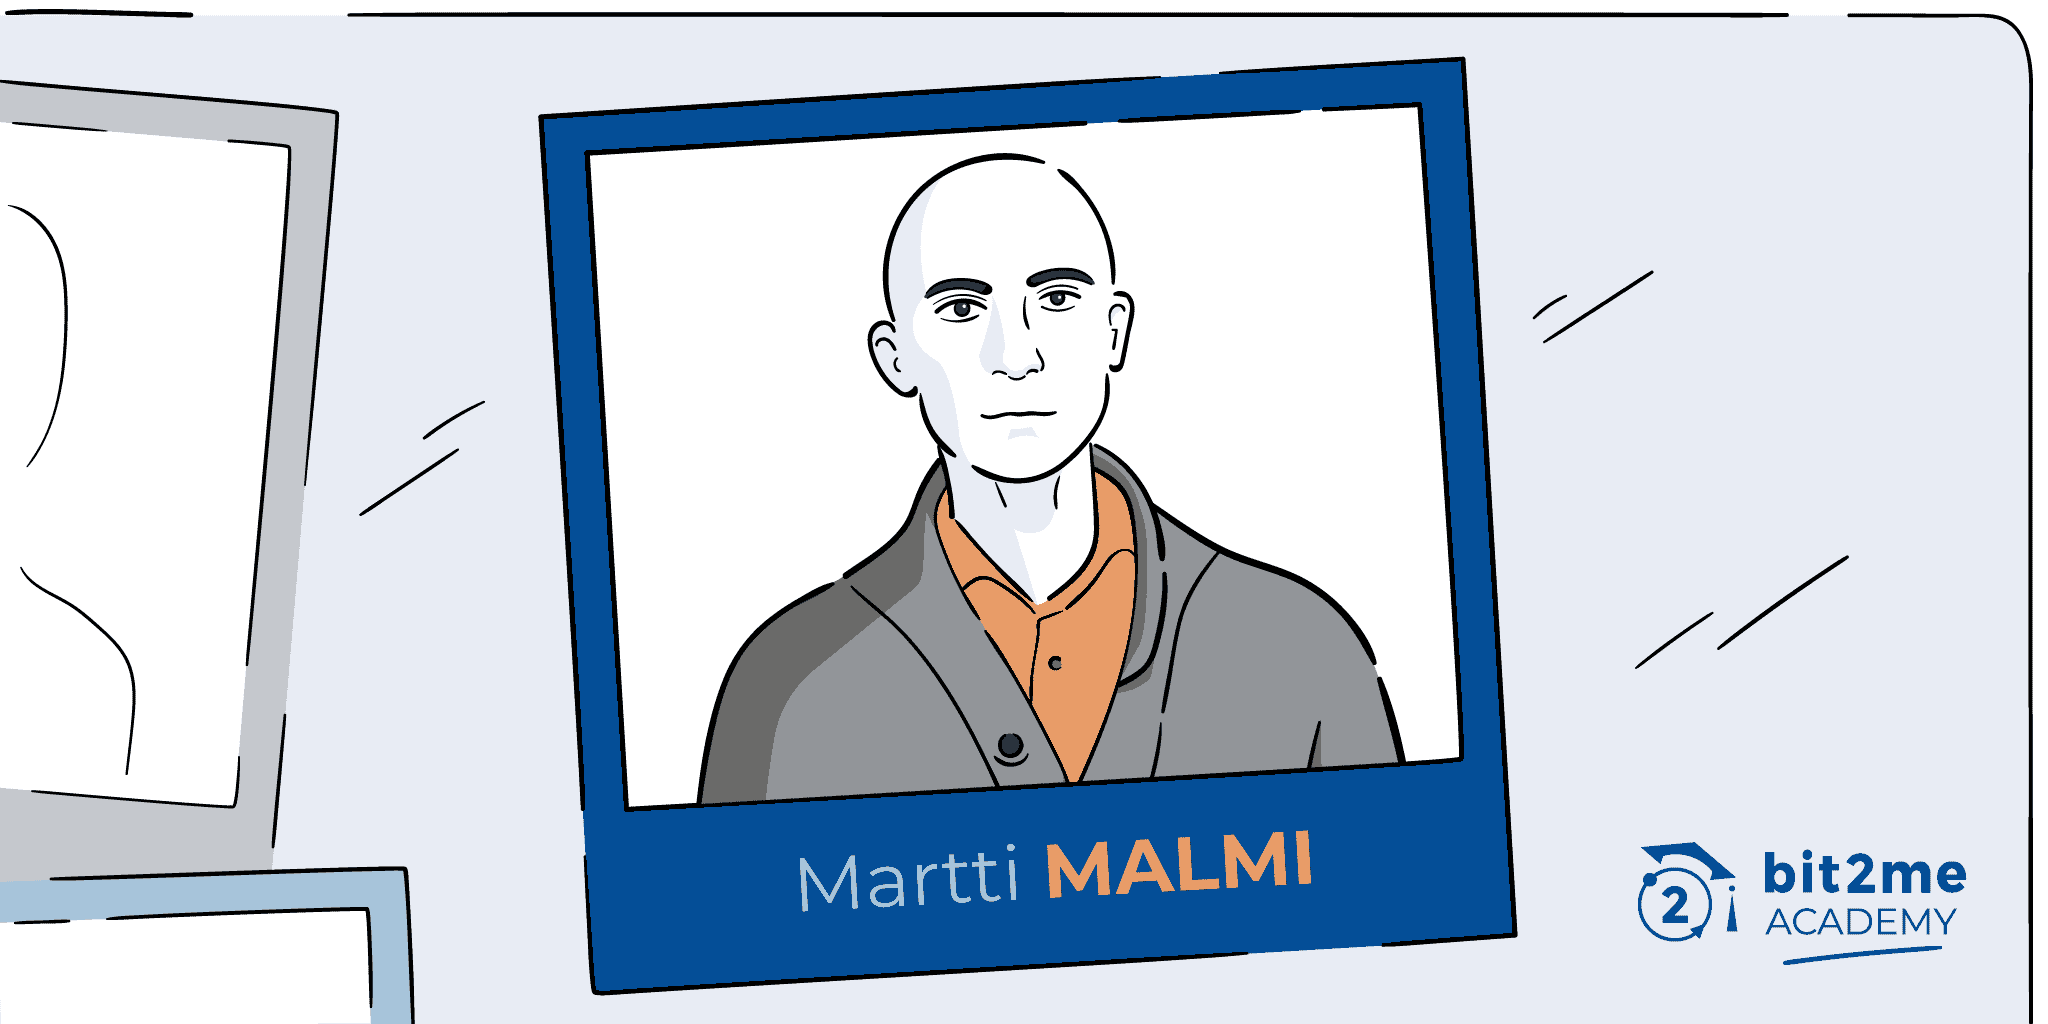 who is martti malmi, martti malmi cryptocurrencies, martti malmi blockchain, martti malmi bitcoin